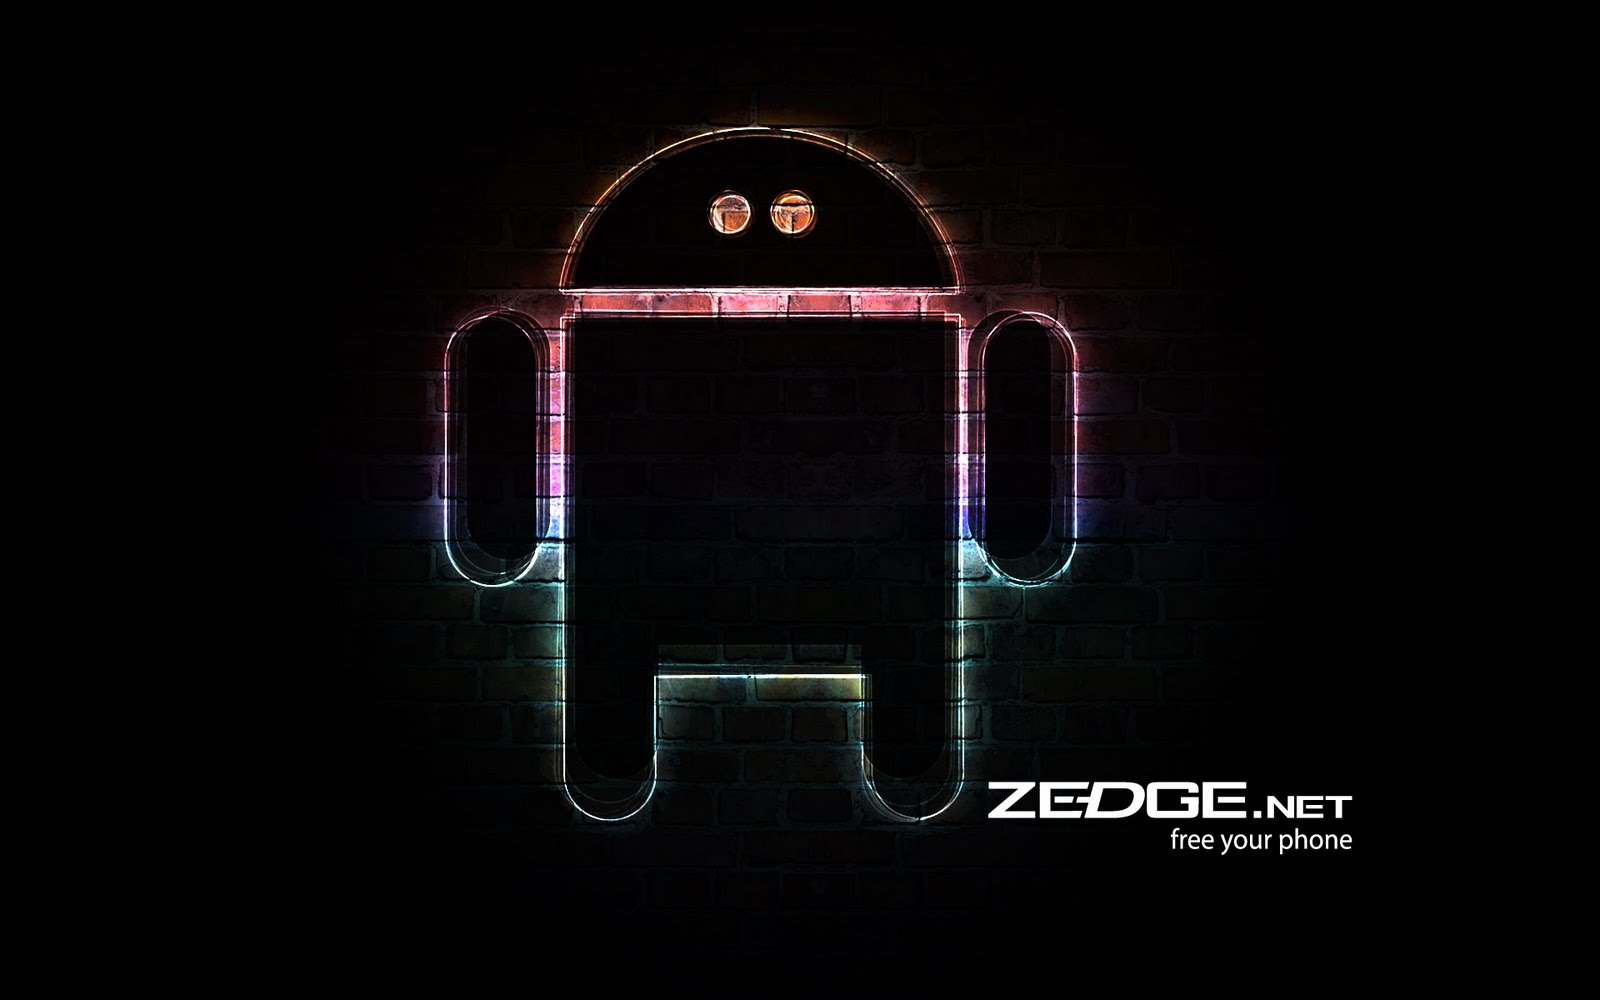 wallpapers zedge 1 responses to zedge wallpapers get zedge wallpapers 1600x1000